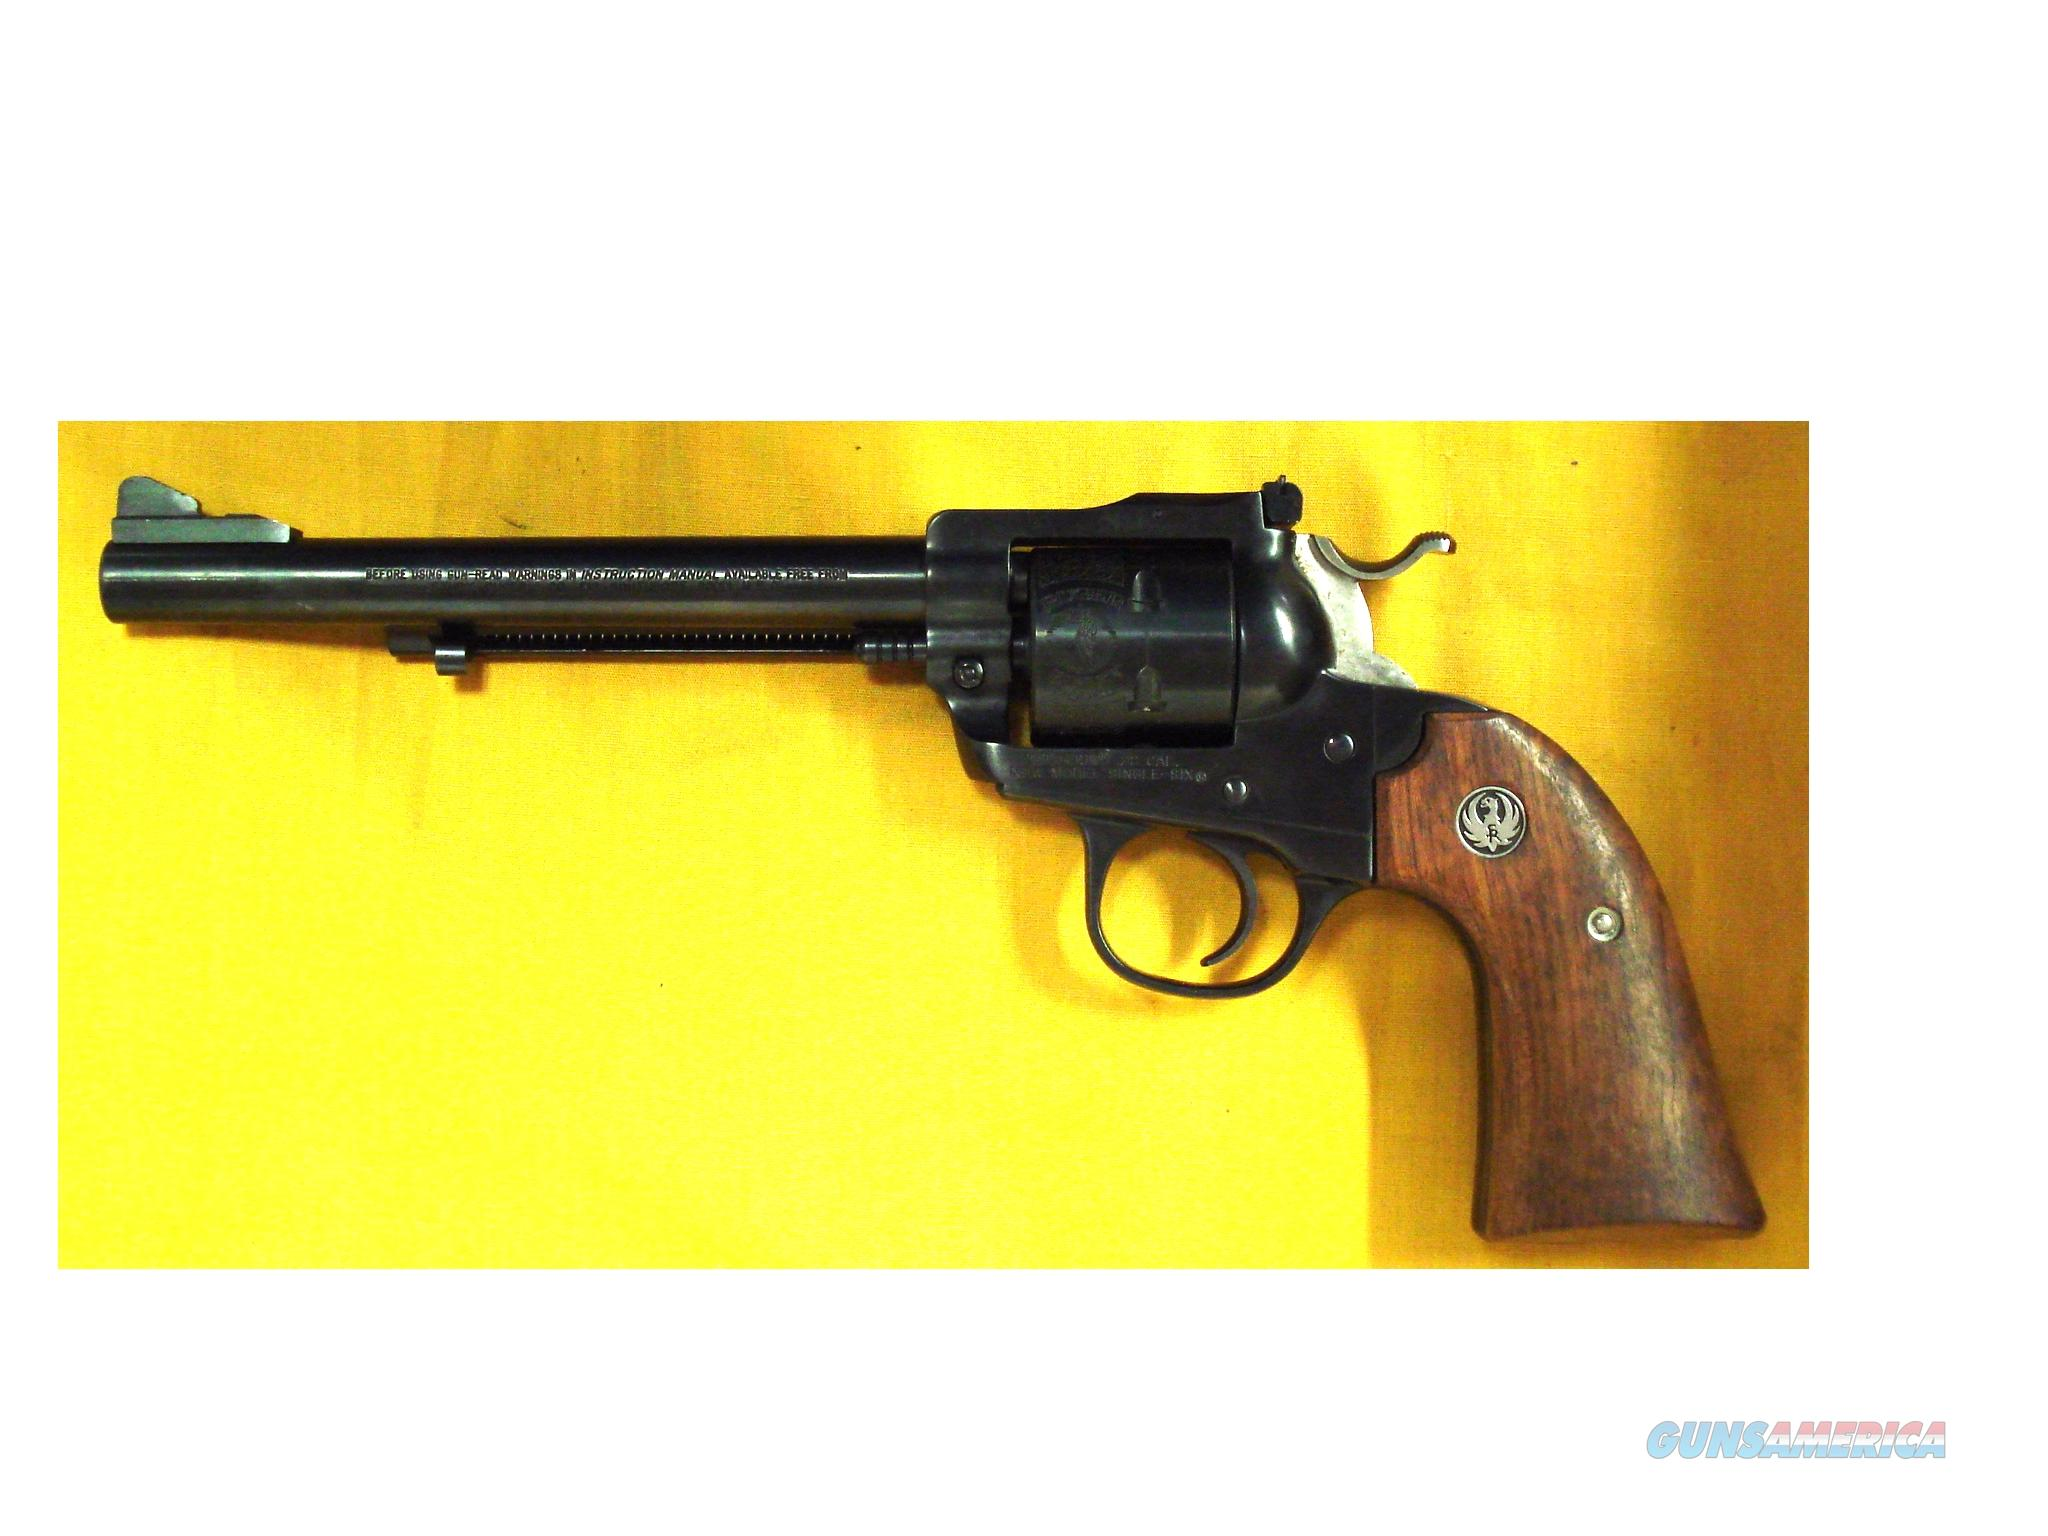 "RUGER NM SINGLE 6 BISLEY .22LR 6 1/2"" BARREL  Guns > Pistols > Ruger Single Action Revolvers > Single Six Type"